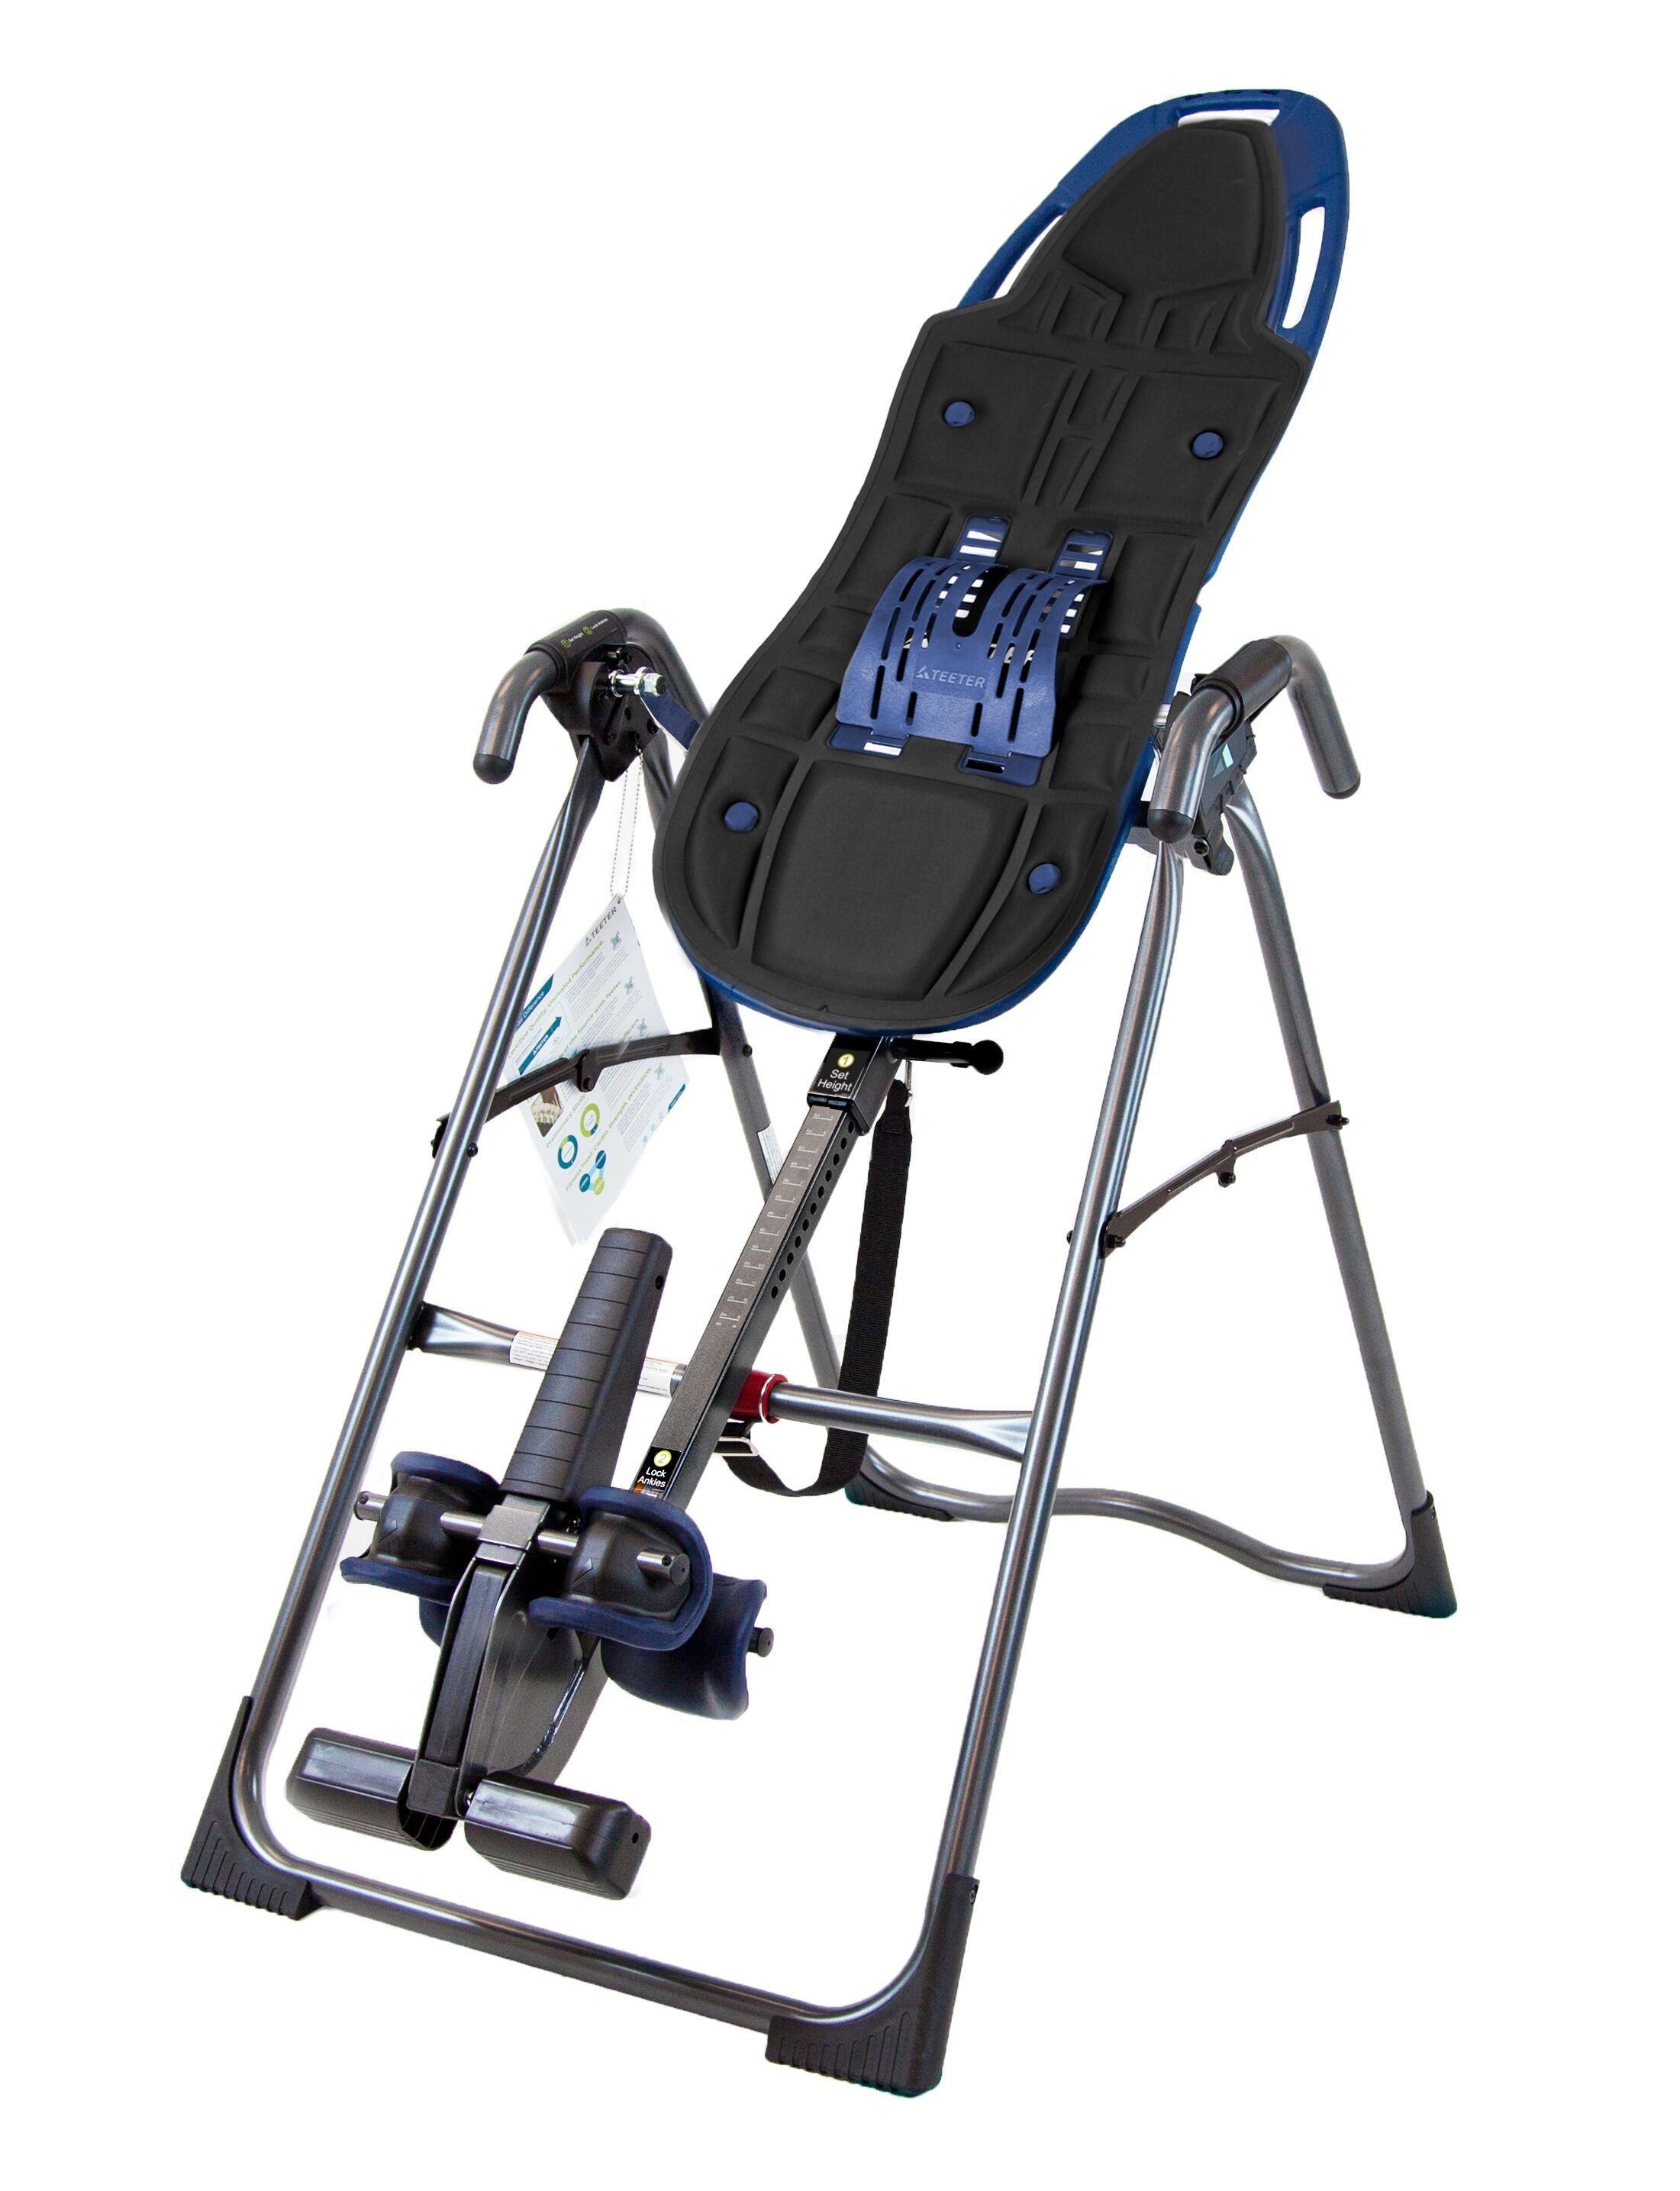 Teeter 900LX Inversion Table with Back Pain Relief DVD by Teeter